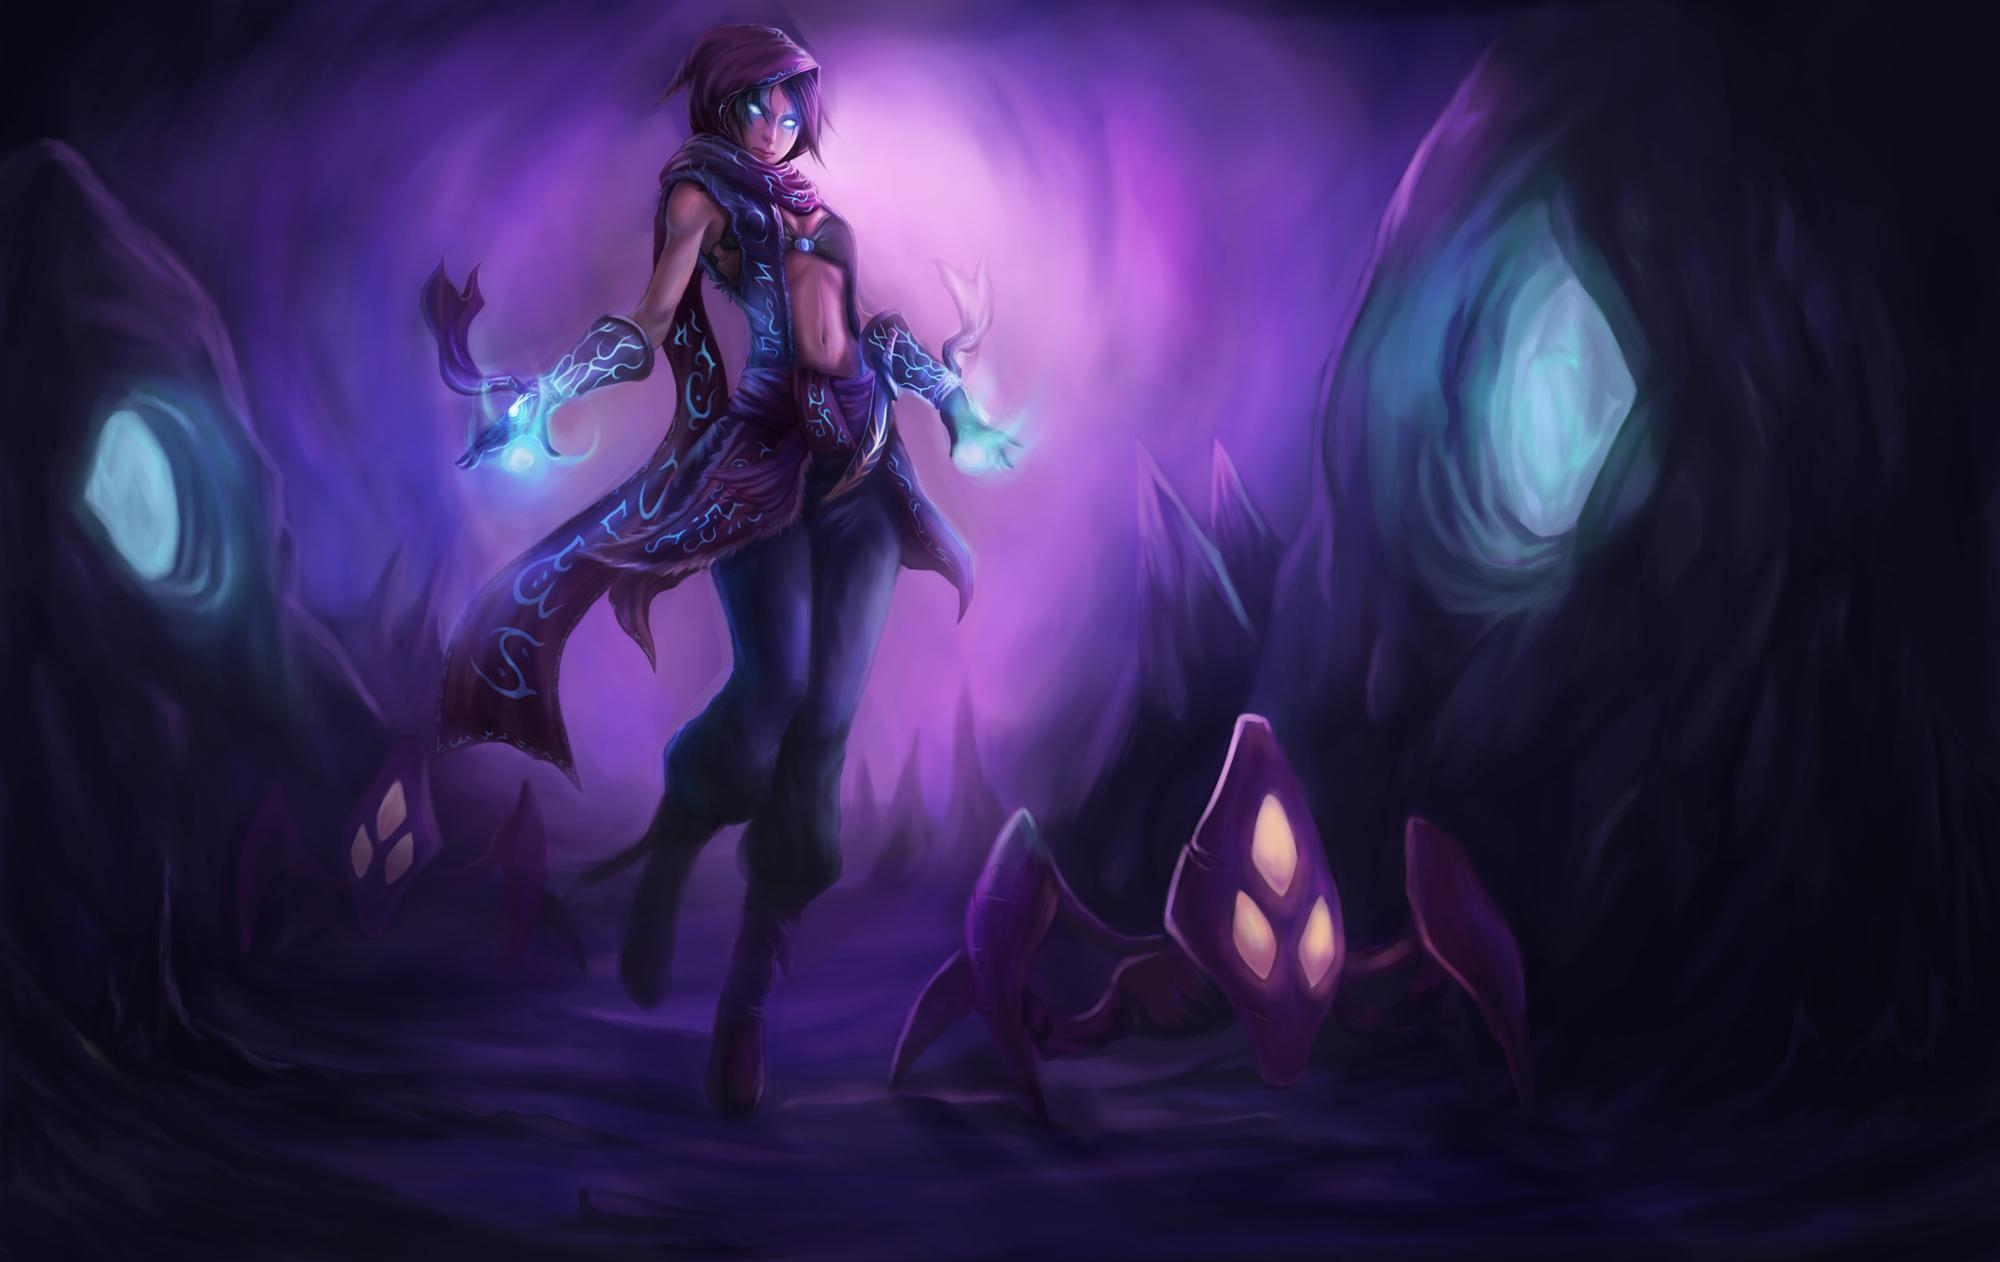 league_of_legends_rule_63_malzahar_hd-wallpaper-1132966.jpg